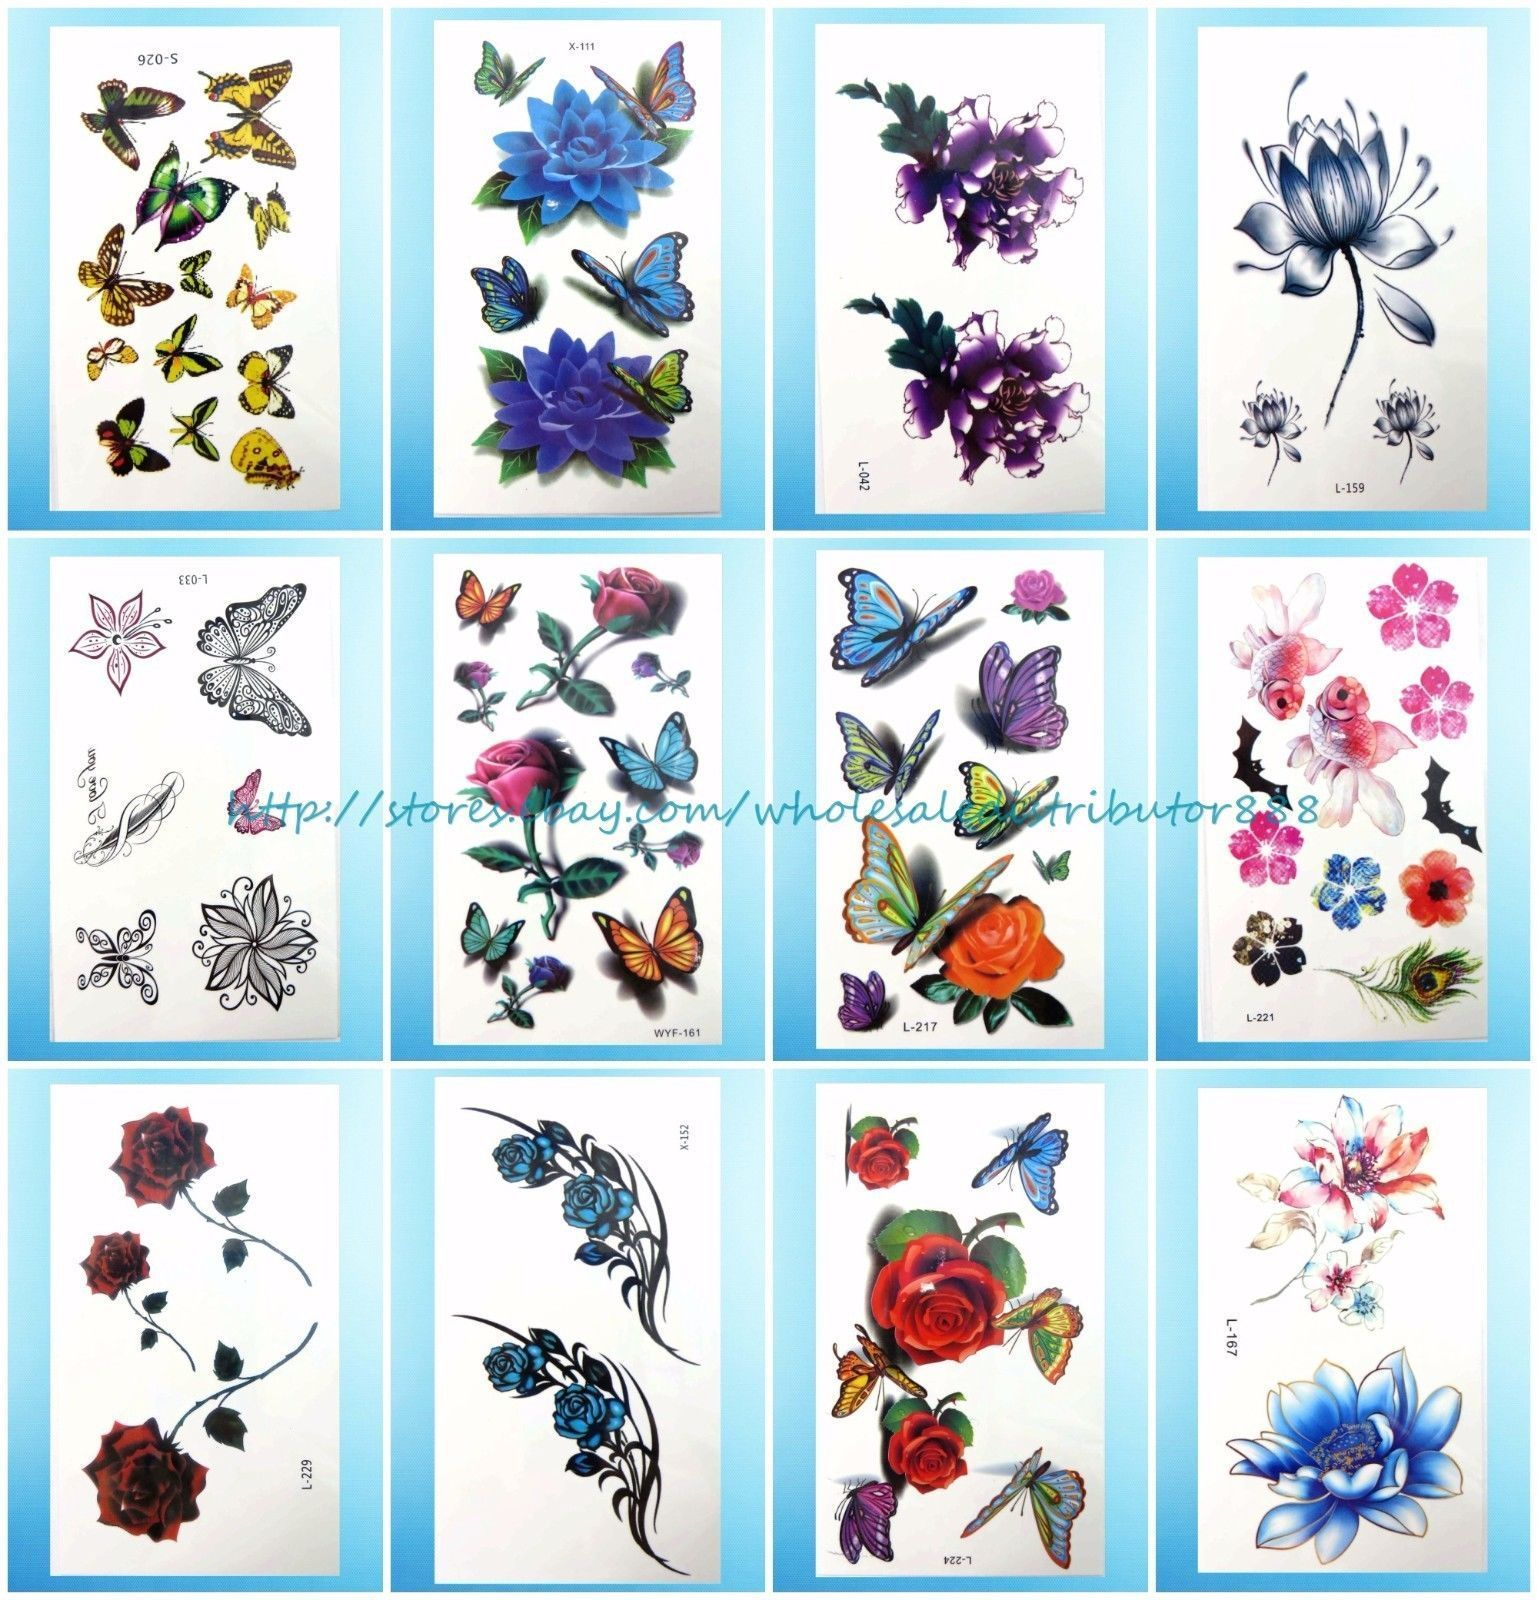 Tramp stamp cover up tattoo ideas us seller  sheets bulk temporary tattoo stickers tramp stamp